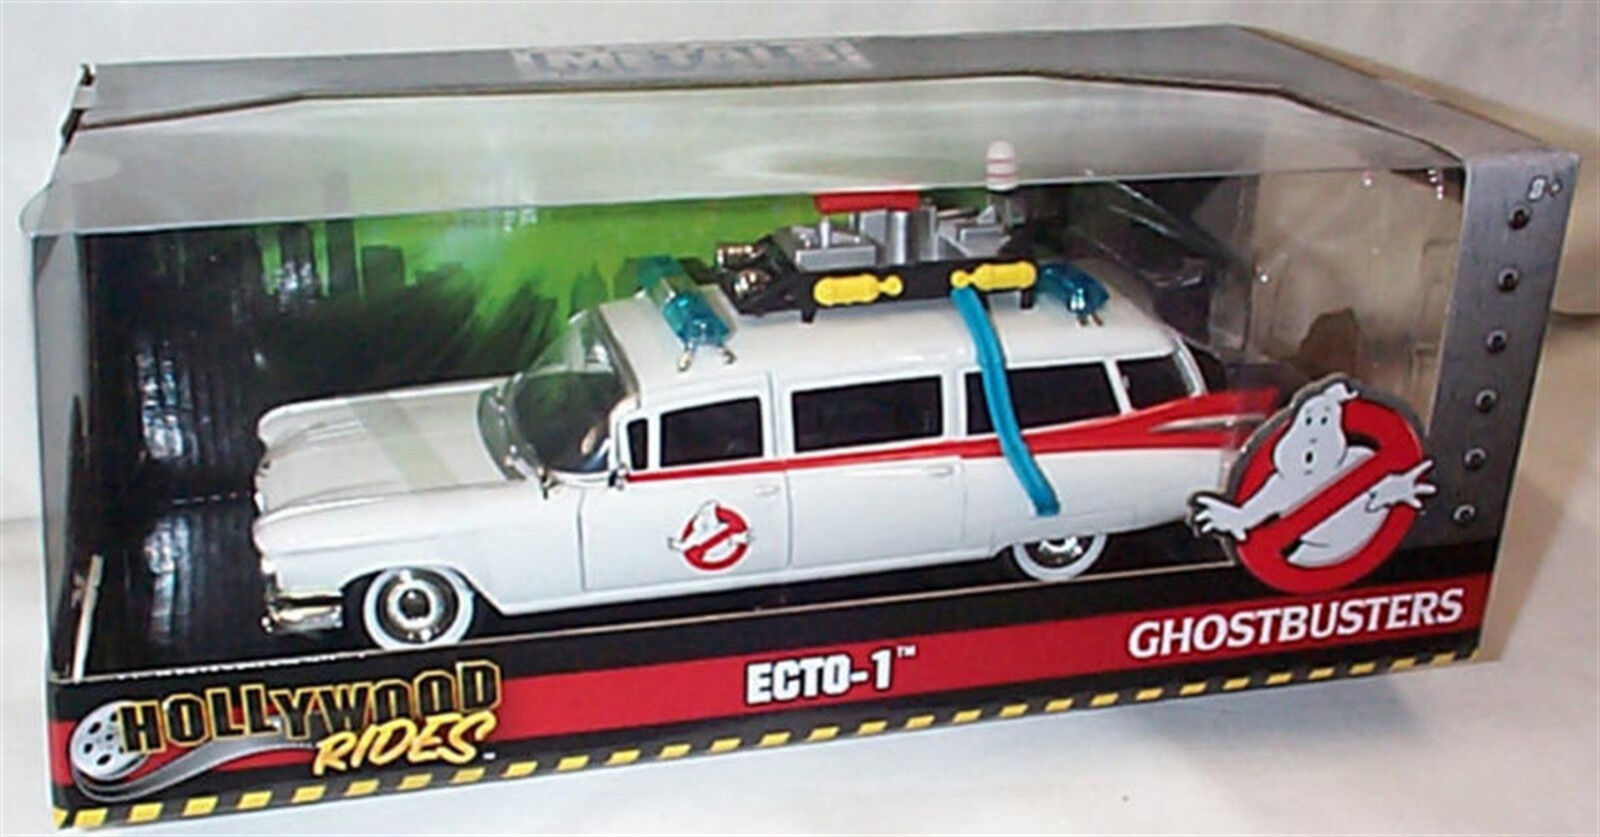 Ghostbusters ECTO-1 1 24 SCALE DIECAST OPENING Parts 99731